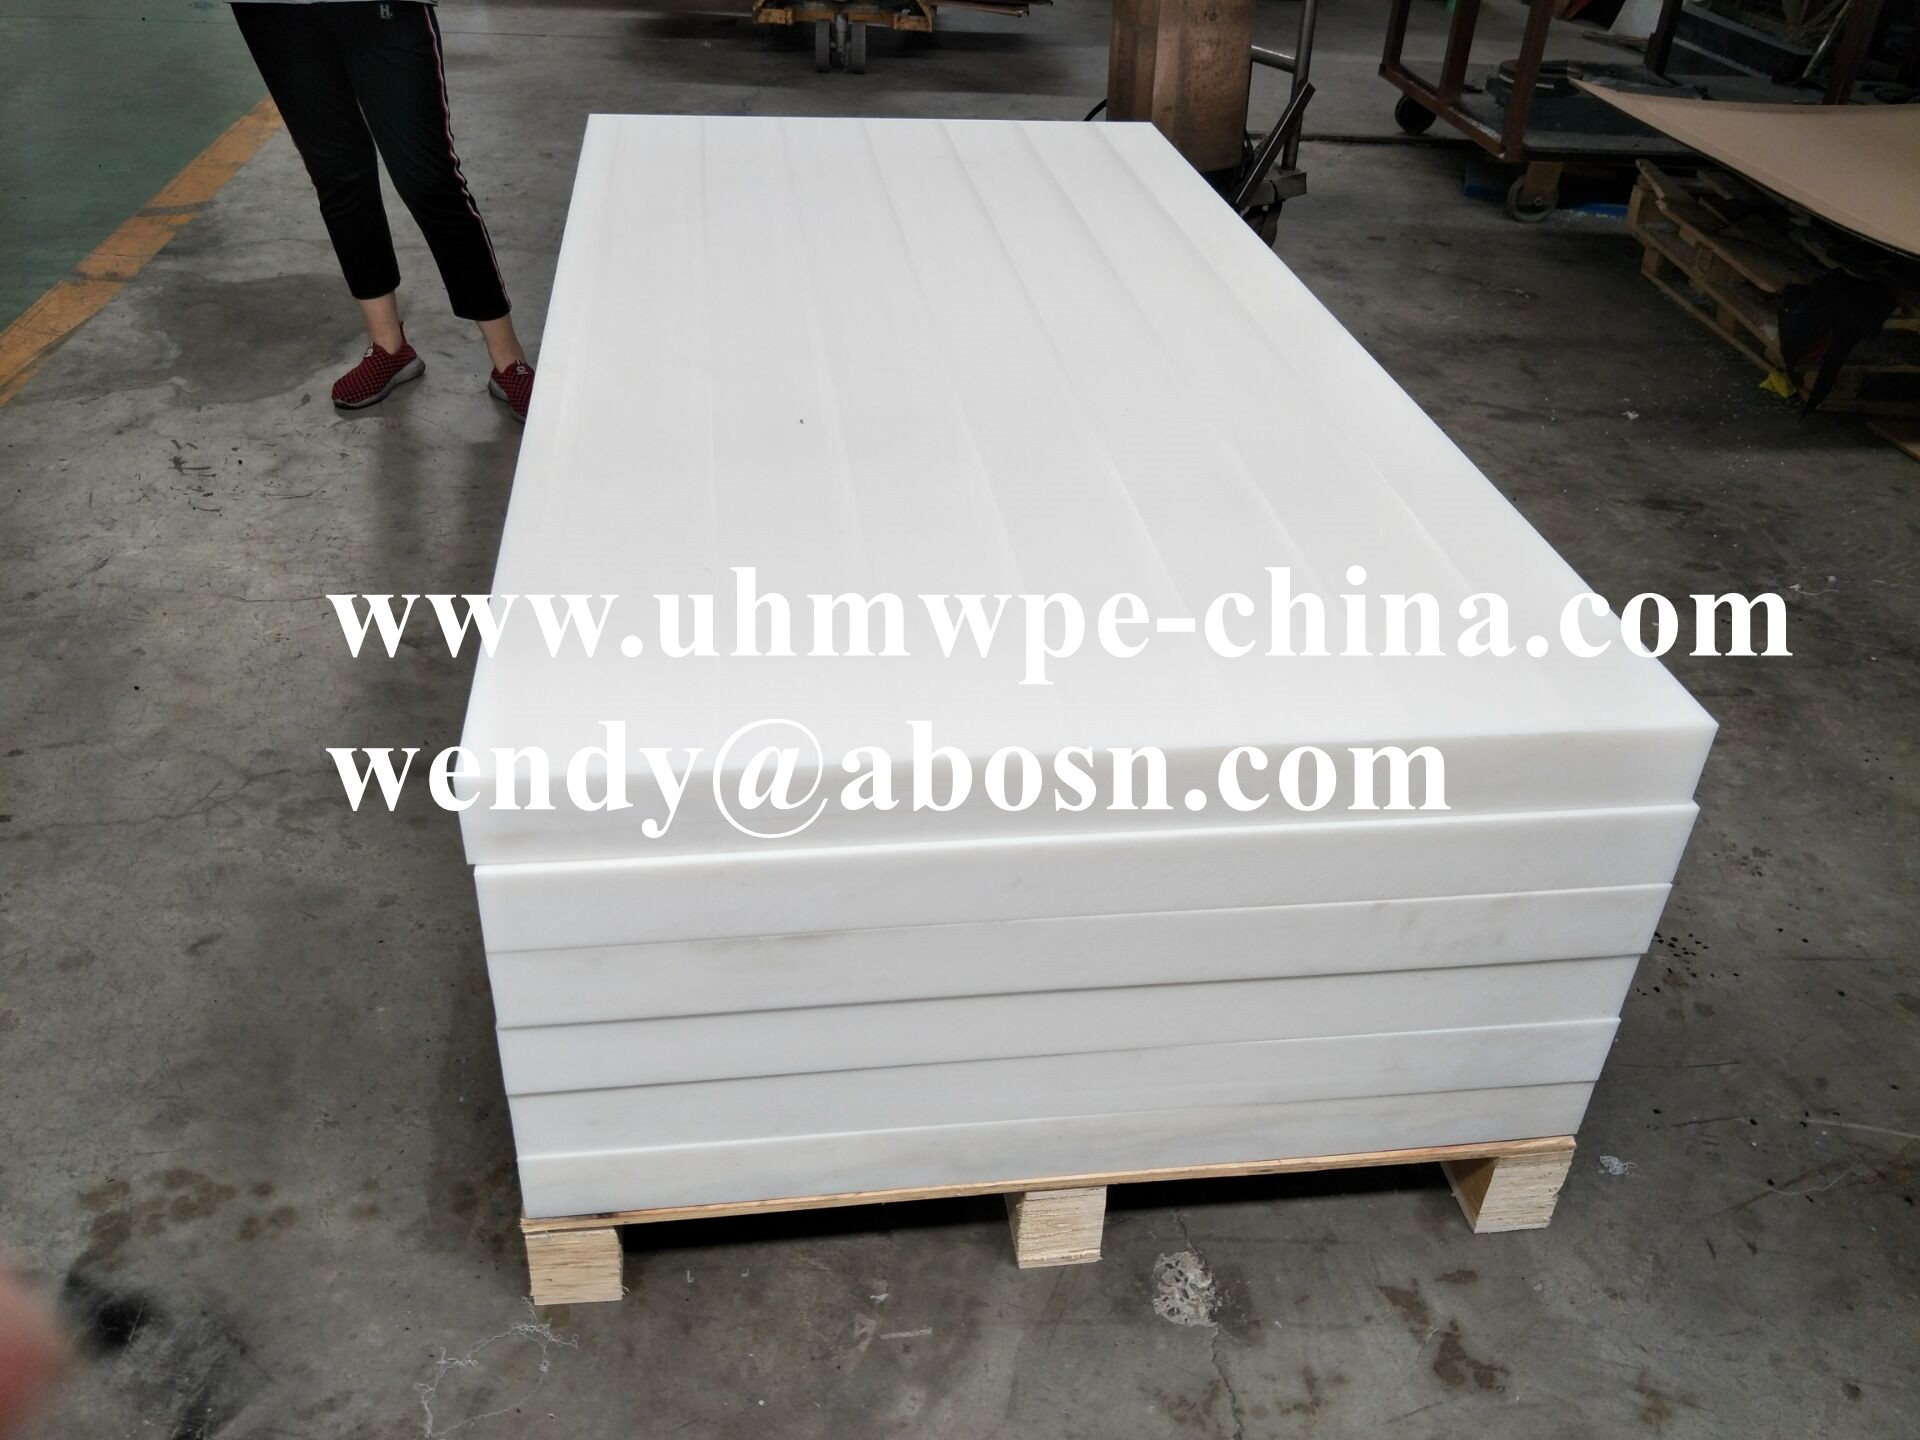 High Temperature Resistance UHMWPE Truck Liner